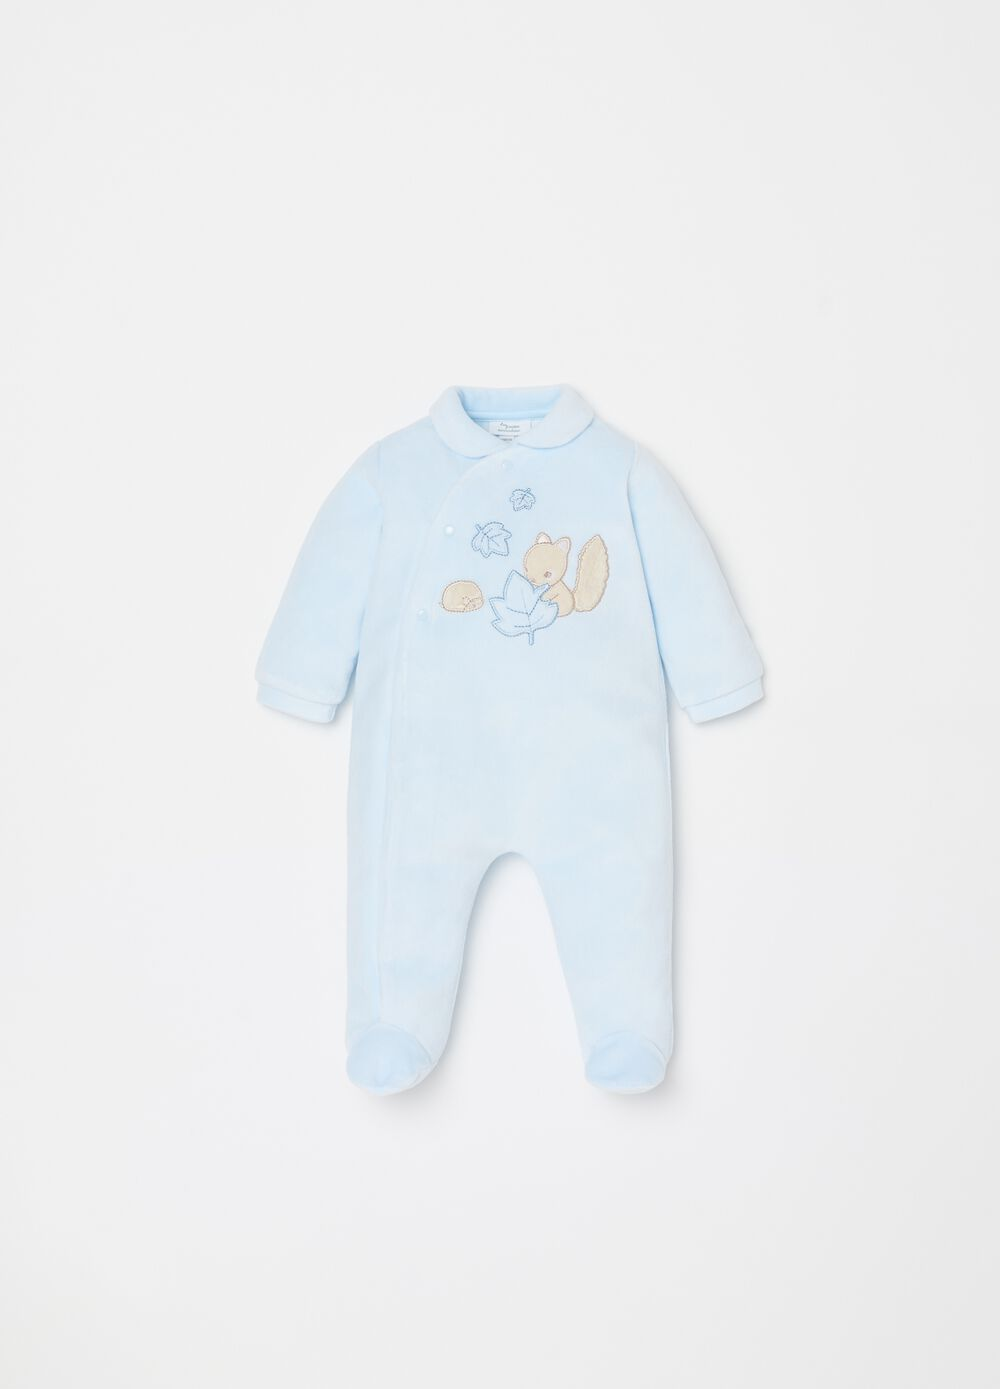 Onesie with feet and squirrel embroidery